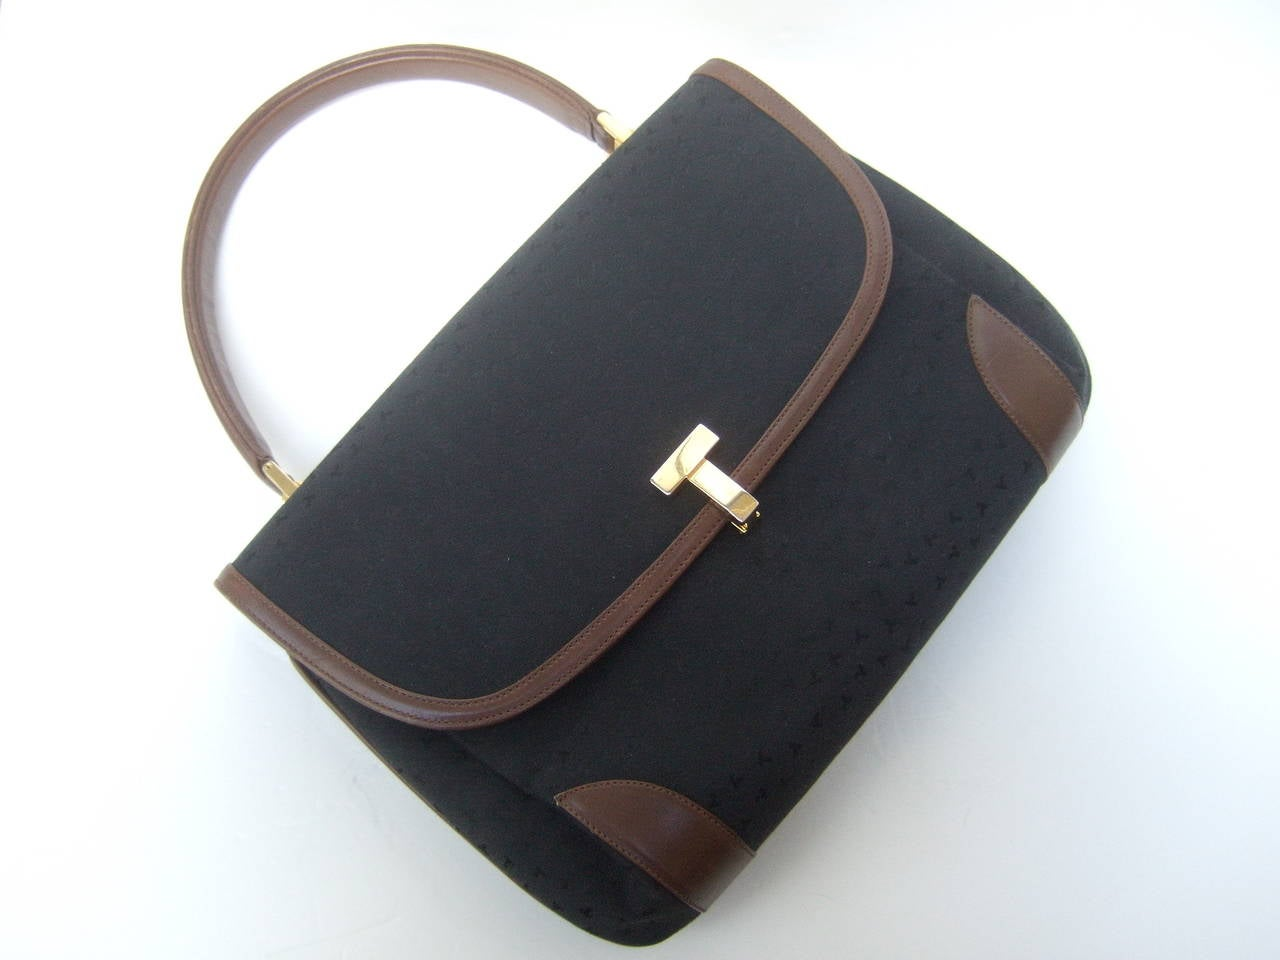 Tiffany & Company Black canvas leather trim handbag Made in Italy c 1980s The stylish handbag is covered with black canvas with Tiffany's subtle initials repeated throughout the fabric covering   The handle & sides of the Italian handbag are